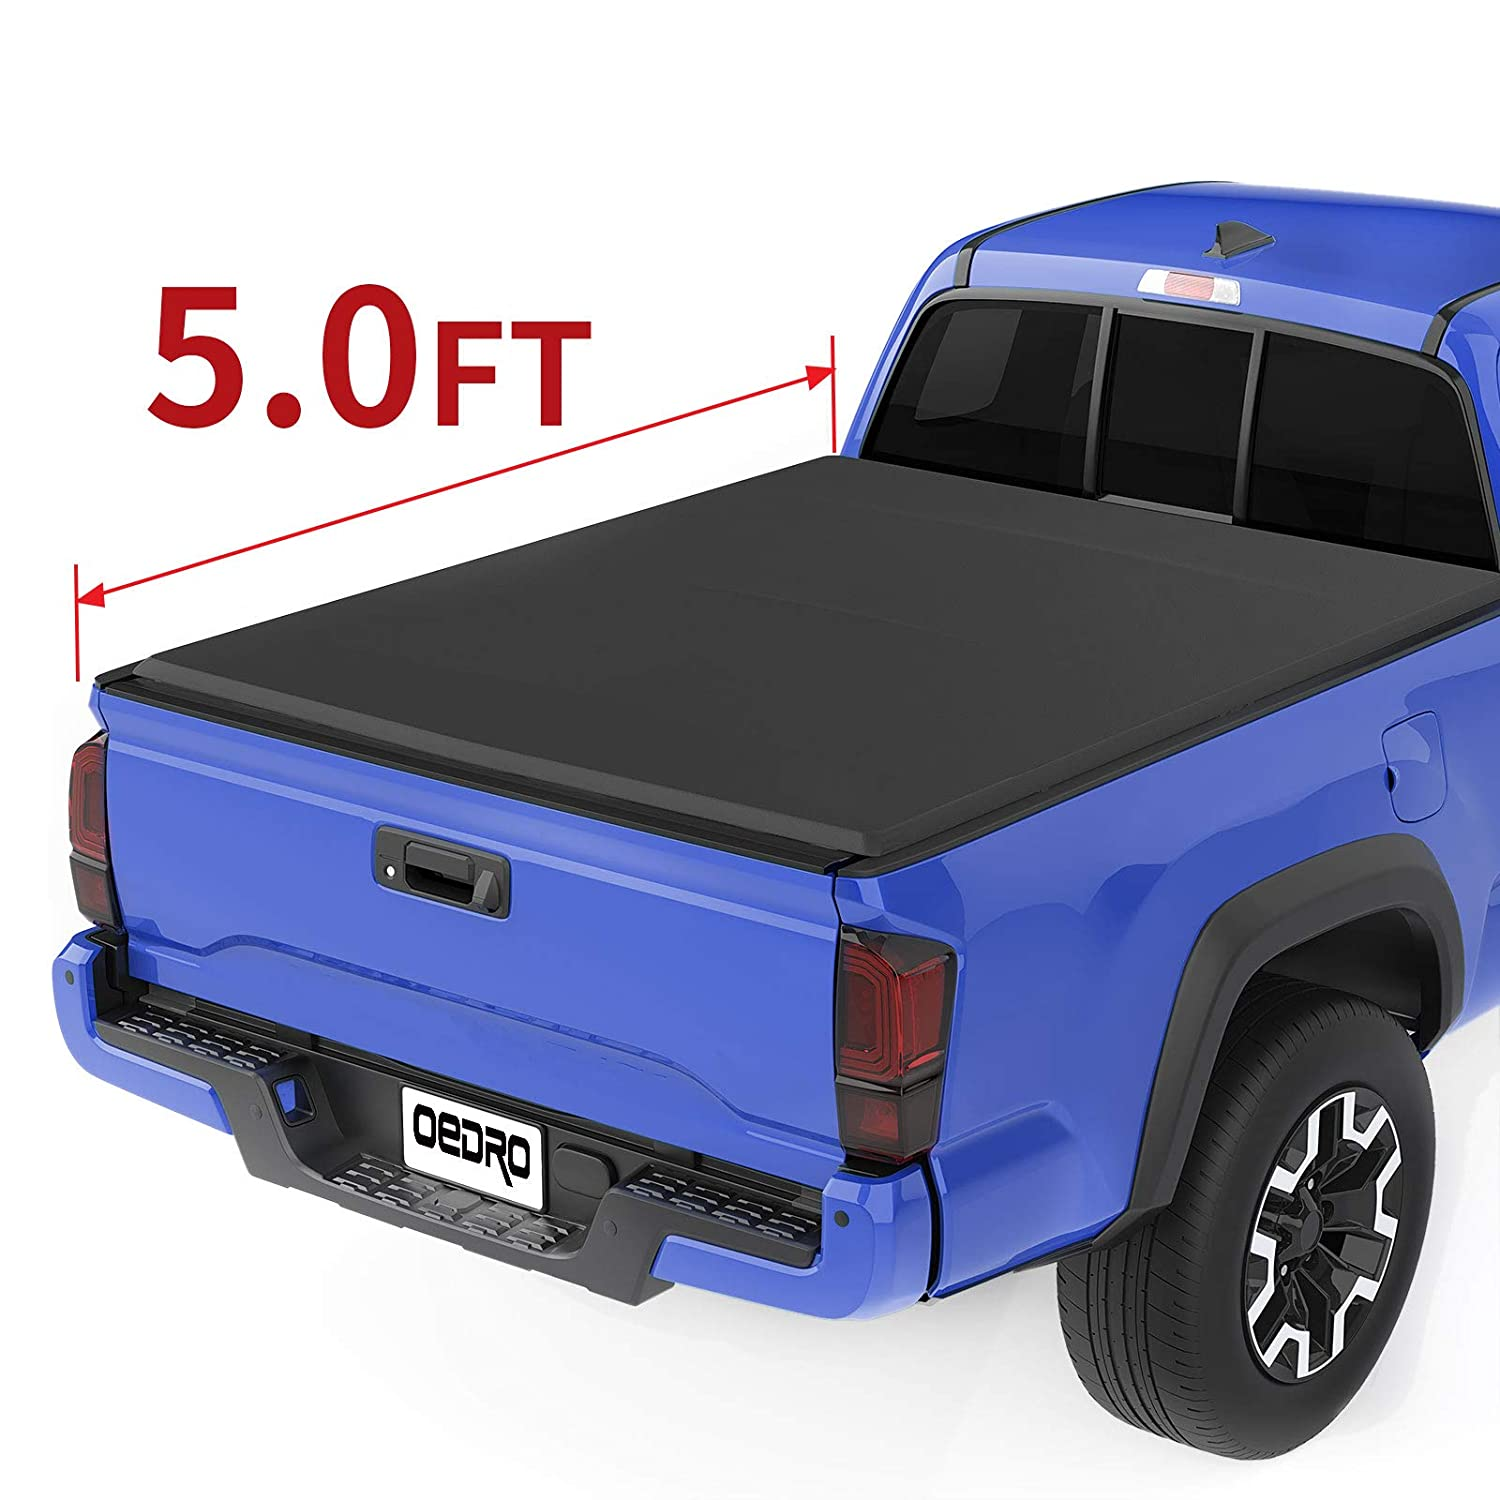 Tacoma Rv Show 2020.Oedro Tri Fold Truck Bed Tonneau Cover Compatible With 2016 2020 Toyota Tacoma With 5 Feet Bed Fleetside